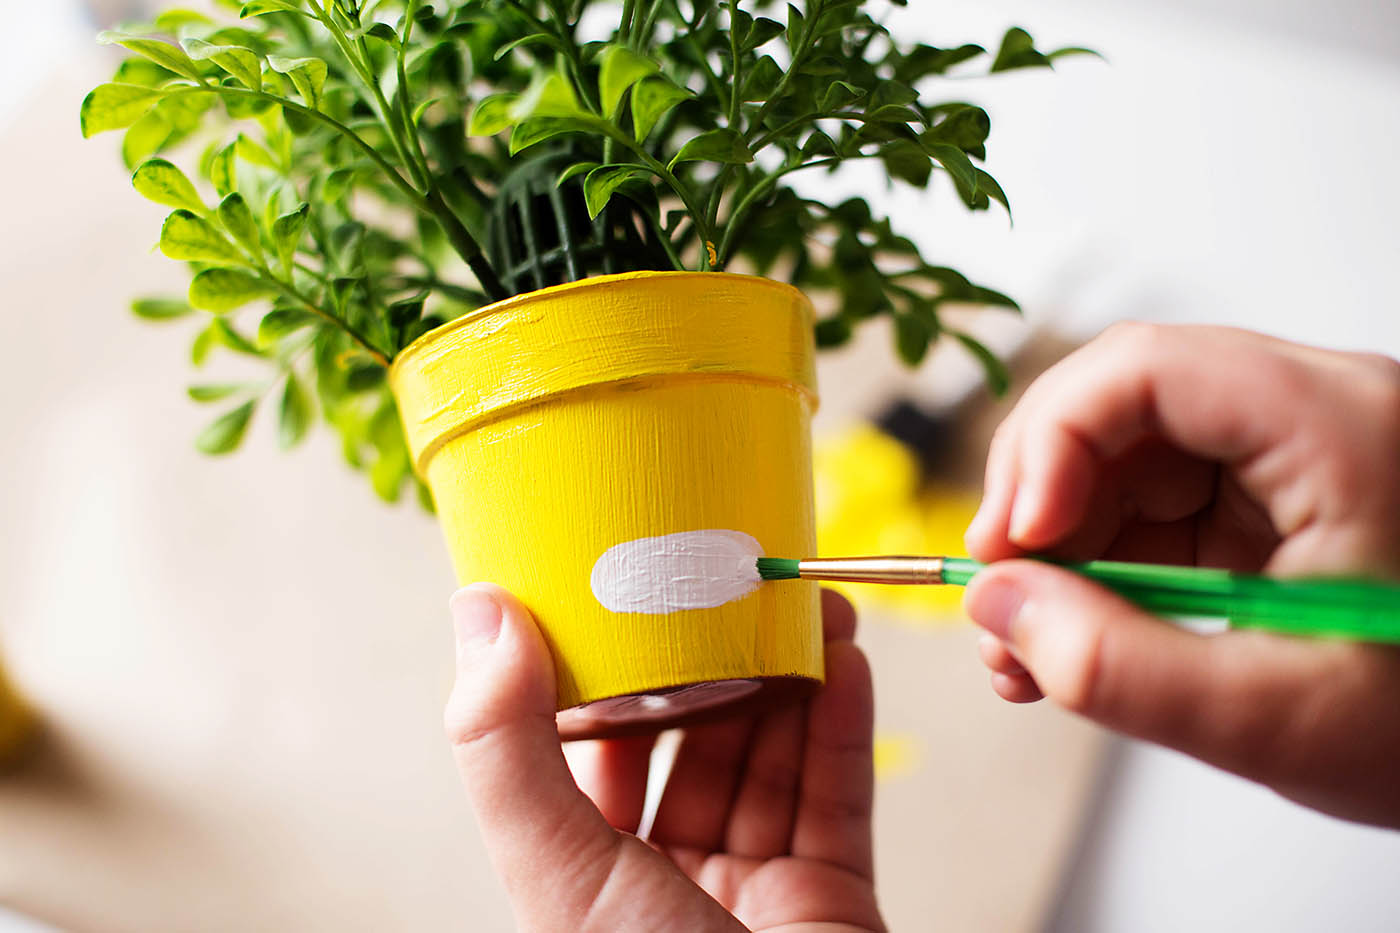 DIY emoji flower or plant pot